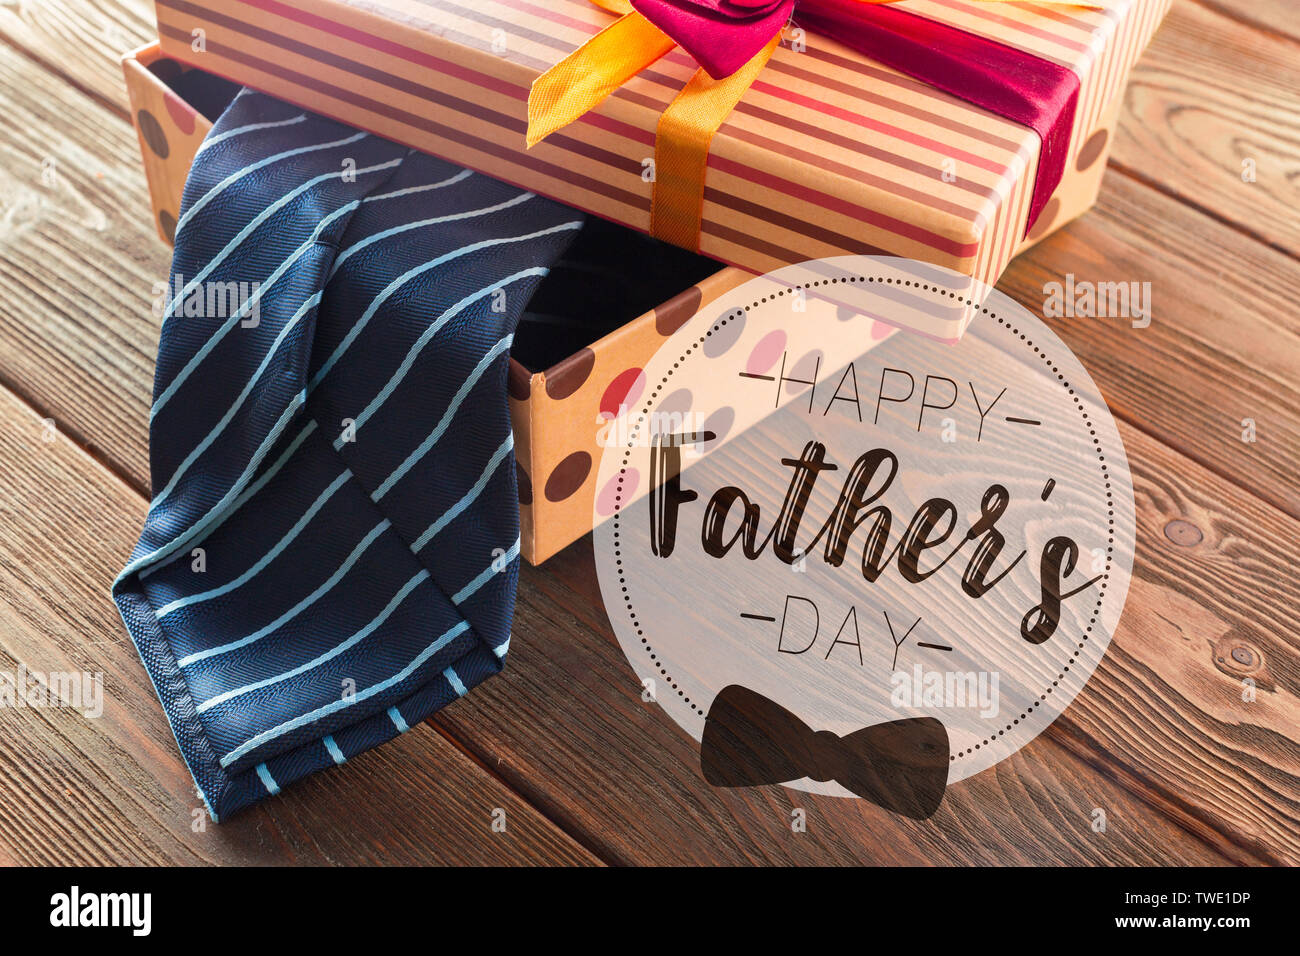 Composite image of happy fathers day - Stock Image